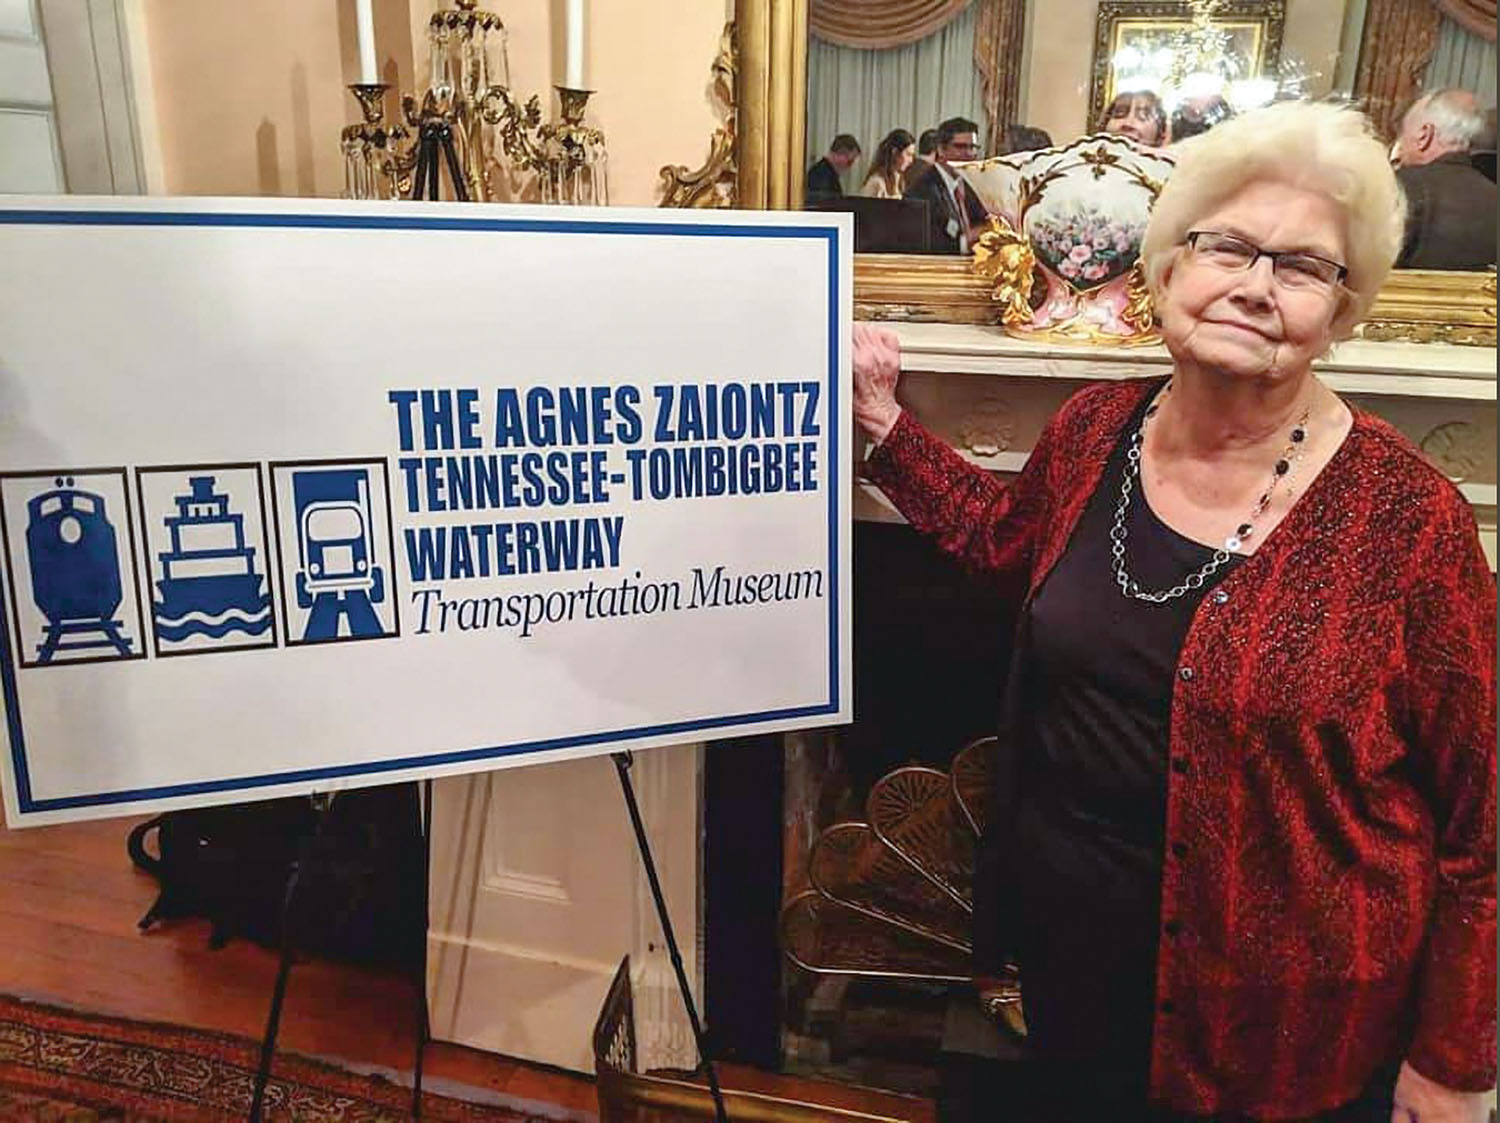 The museum that tells the story of the creation of the Tennessee-Tombigbee Waterway was named for Agnes Zaiontz in a January ceremony.